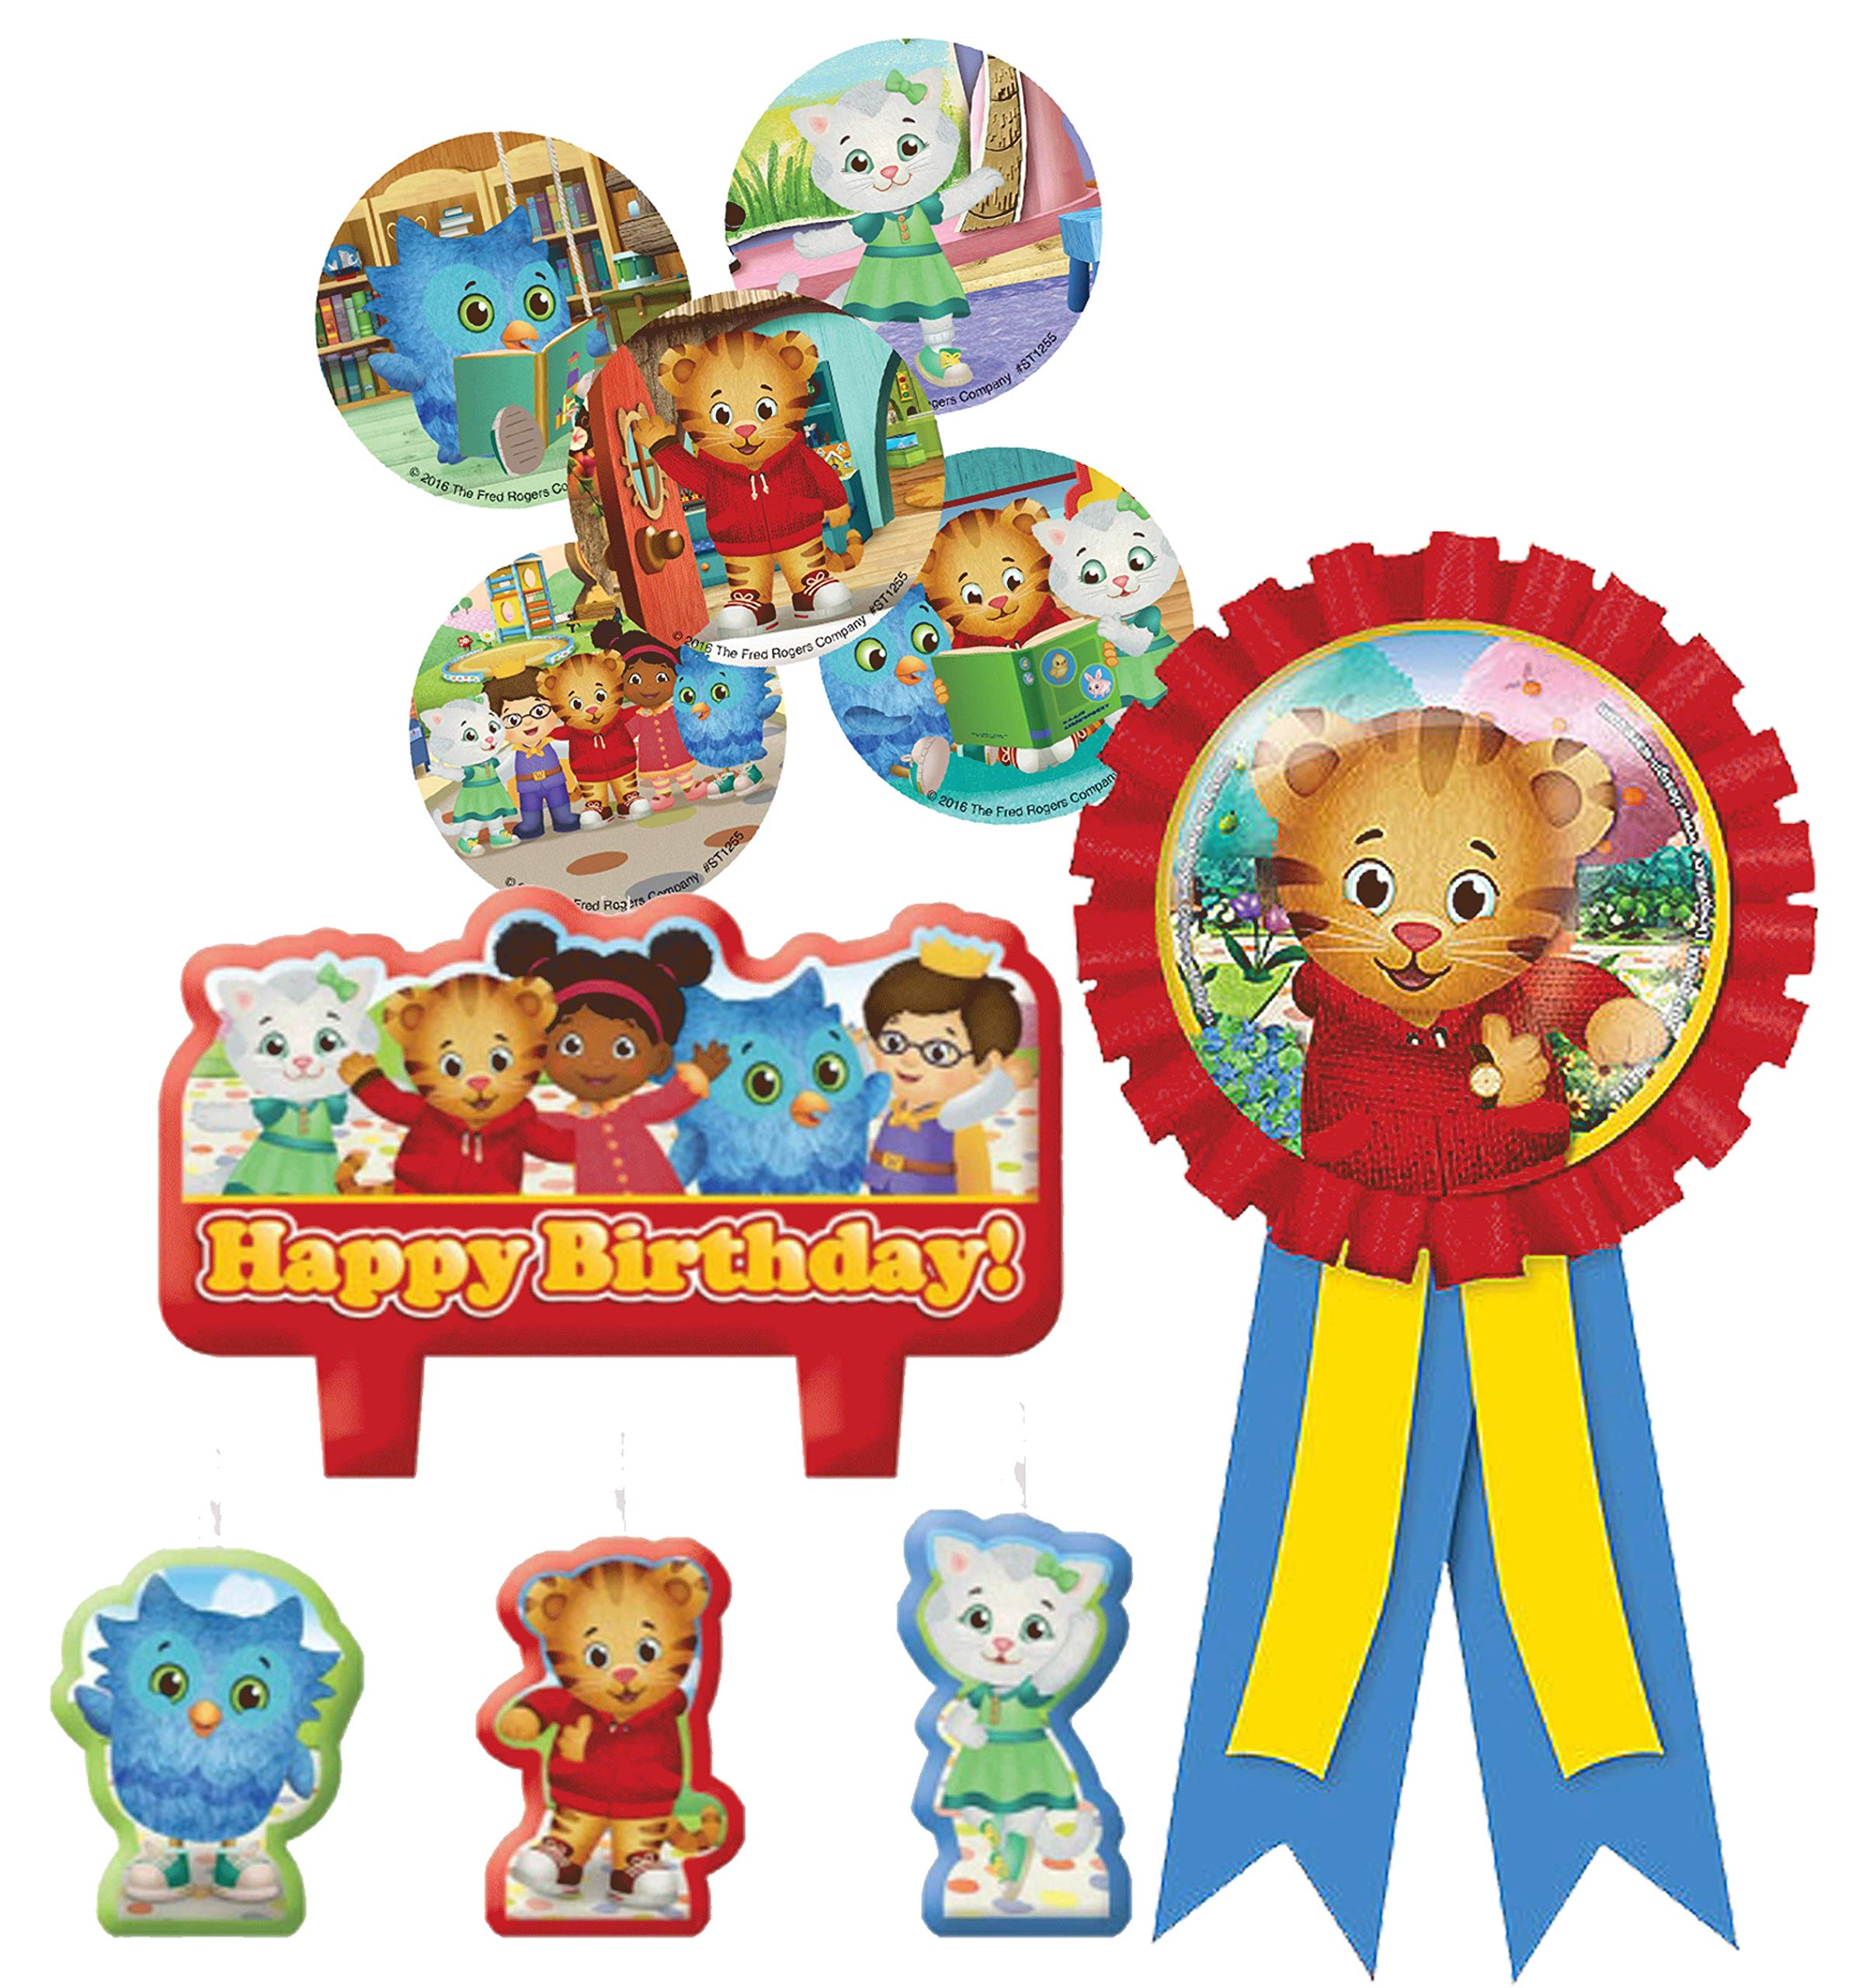 Daniel Tiger's Neighborhood Cake Candle Set & Birthday Party Confetti Filled Ribbon for Guest of Honor! Plus Daniel Tiger Party Favor Stickers!